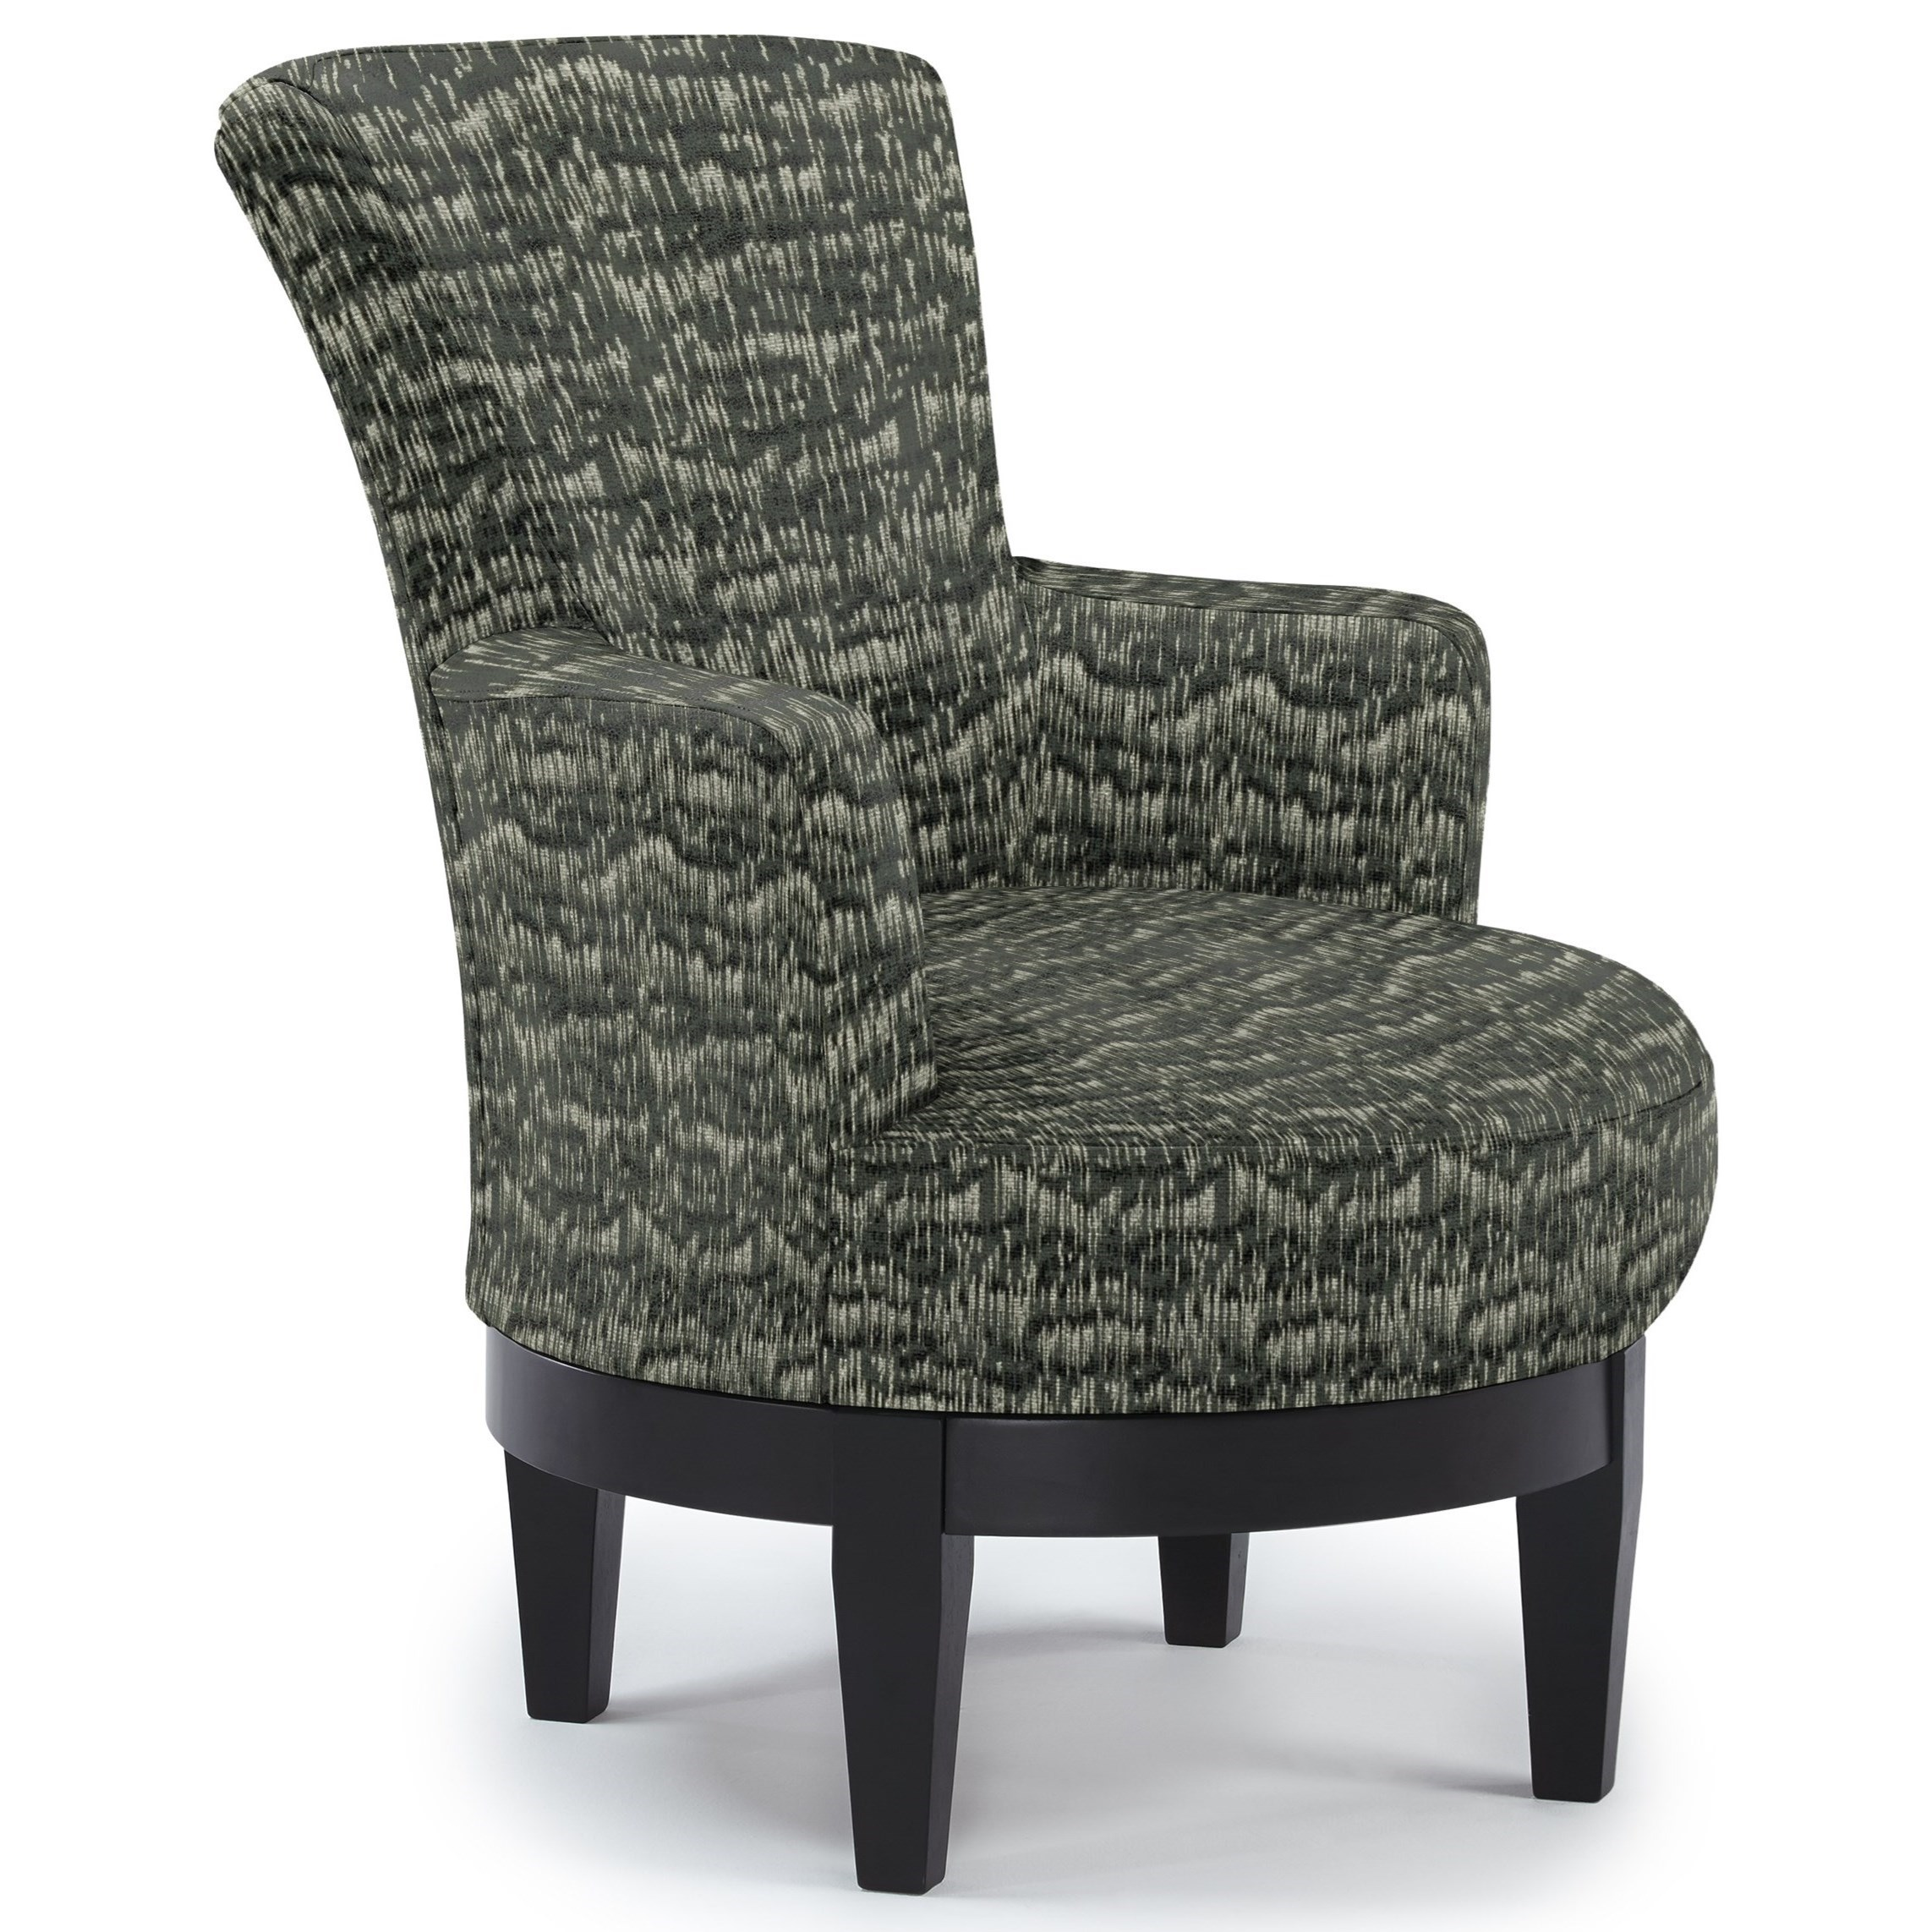 Best Home Furnishings Chairs - Swivel Barrel Swivel Chair - Item Number: 2968-31433